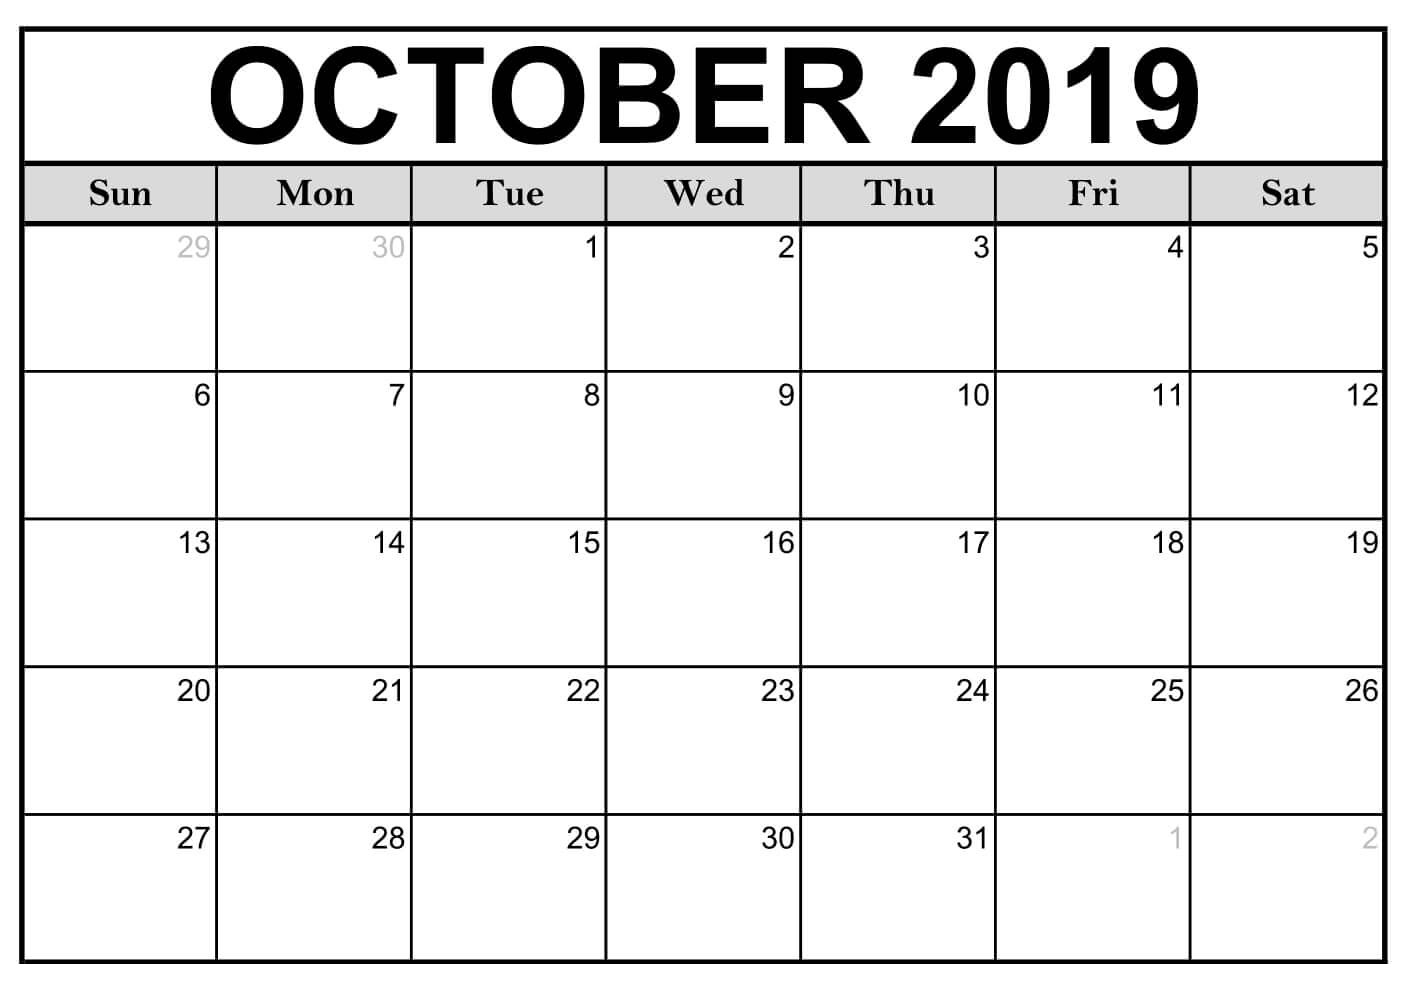 Blank October 2019 Calendar Printable Template - Latest